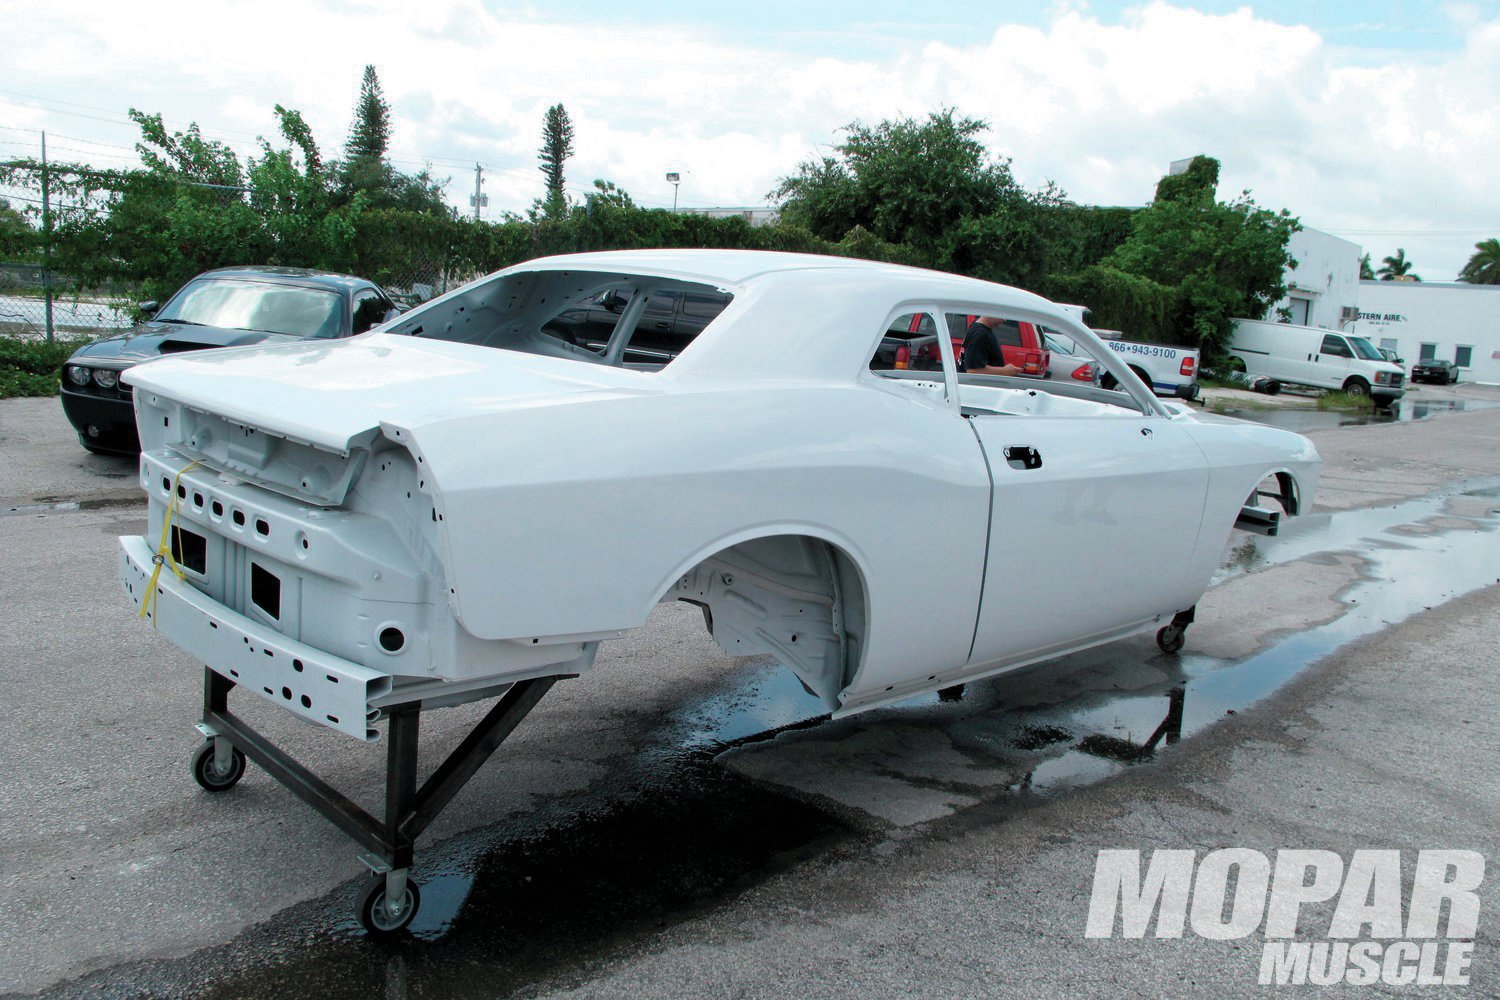 1. The body-in-white Challengers are production cars that were plucked from the assembly line prior to being fully assembled. Therefore they don't have any suspension, wiring, plumbing, interior, or glass, nor do they have an engine or transmission. In our eyes, this is a perfect starting point for an open track road race car.